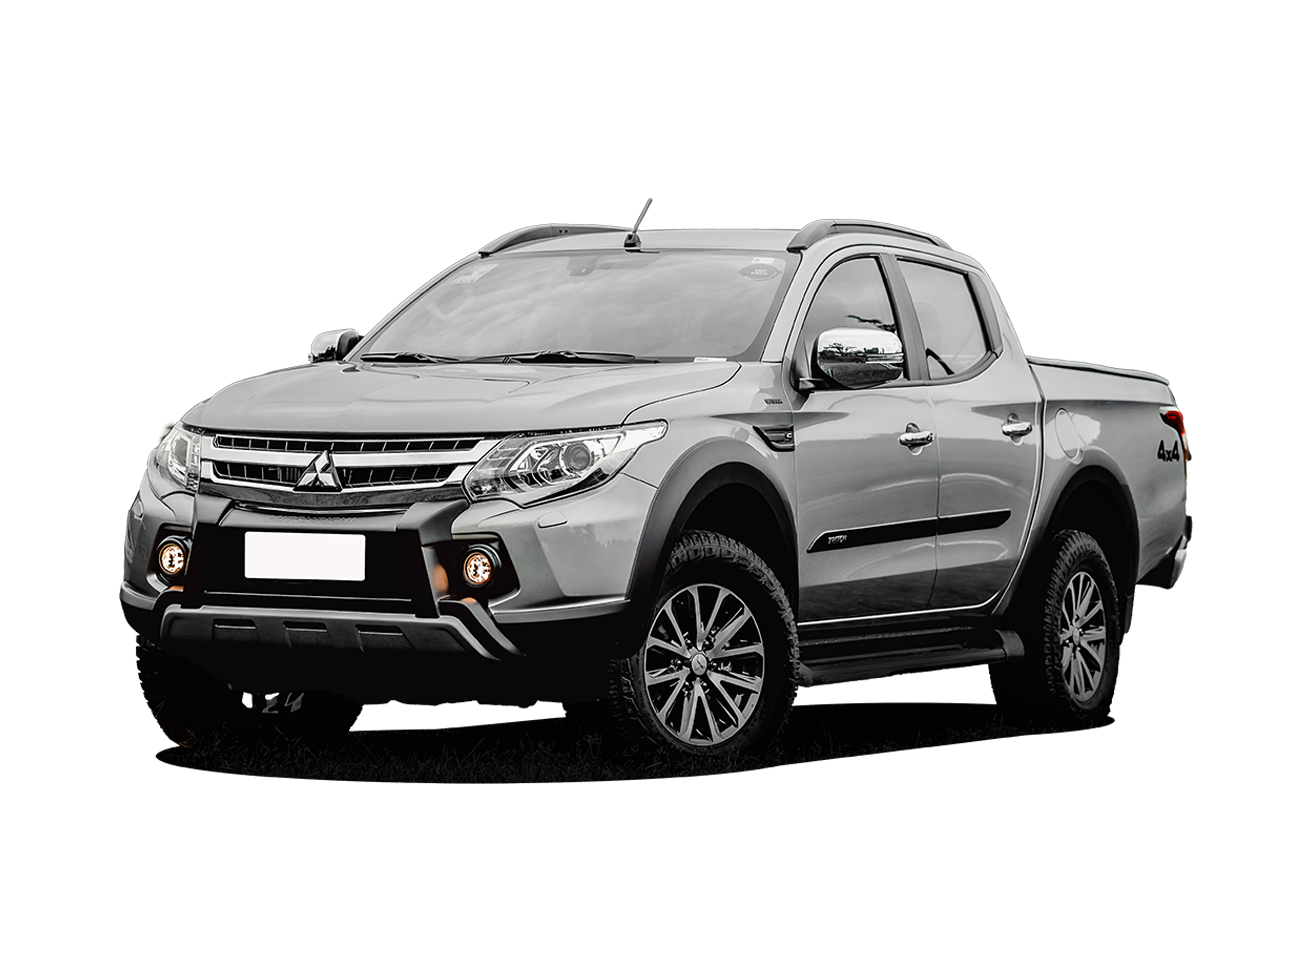 2.4 16V TURBO DIESEL OUTDOOR HPE CD 4X4 AUTOMÁTICO